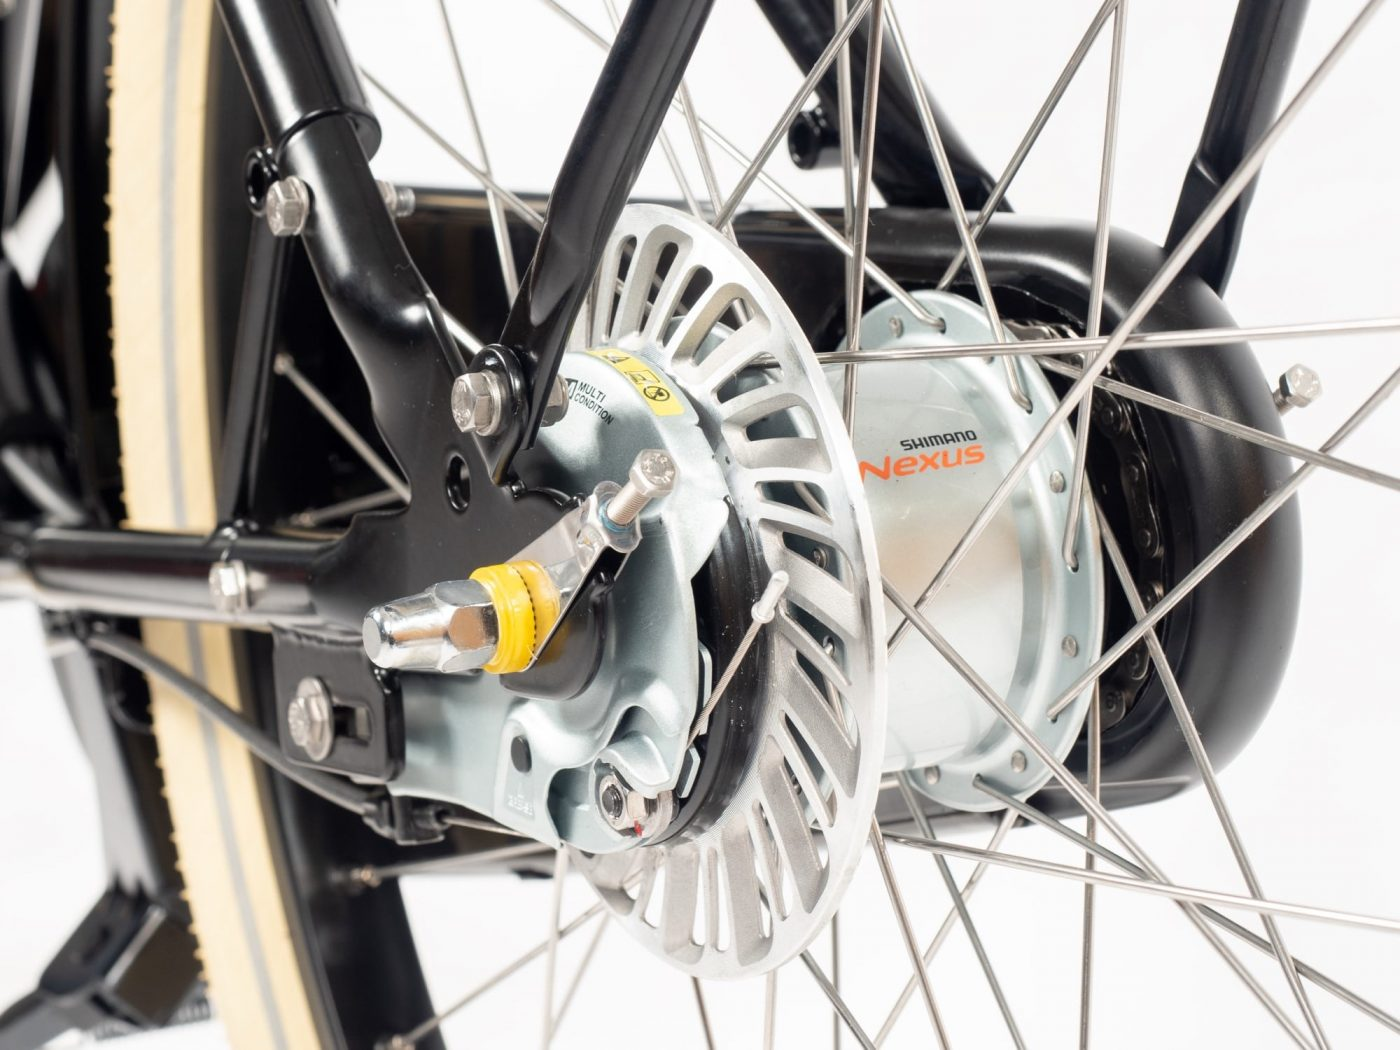 The 'Escape Hatch' On other bicycles changing rear tires and inner tubes is a time consuming job requiring an experienced mechanic. The Fr8's proprietary Escape Hatch enables the rear tire to be changed quickly, without touching the enclosed drivetrain.